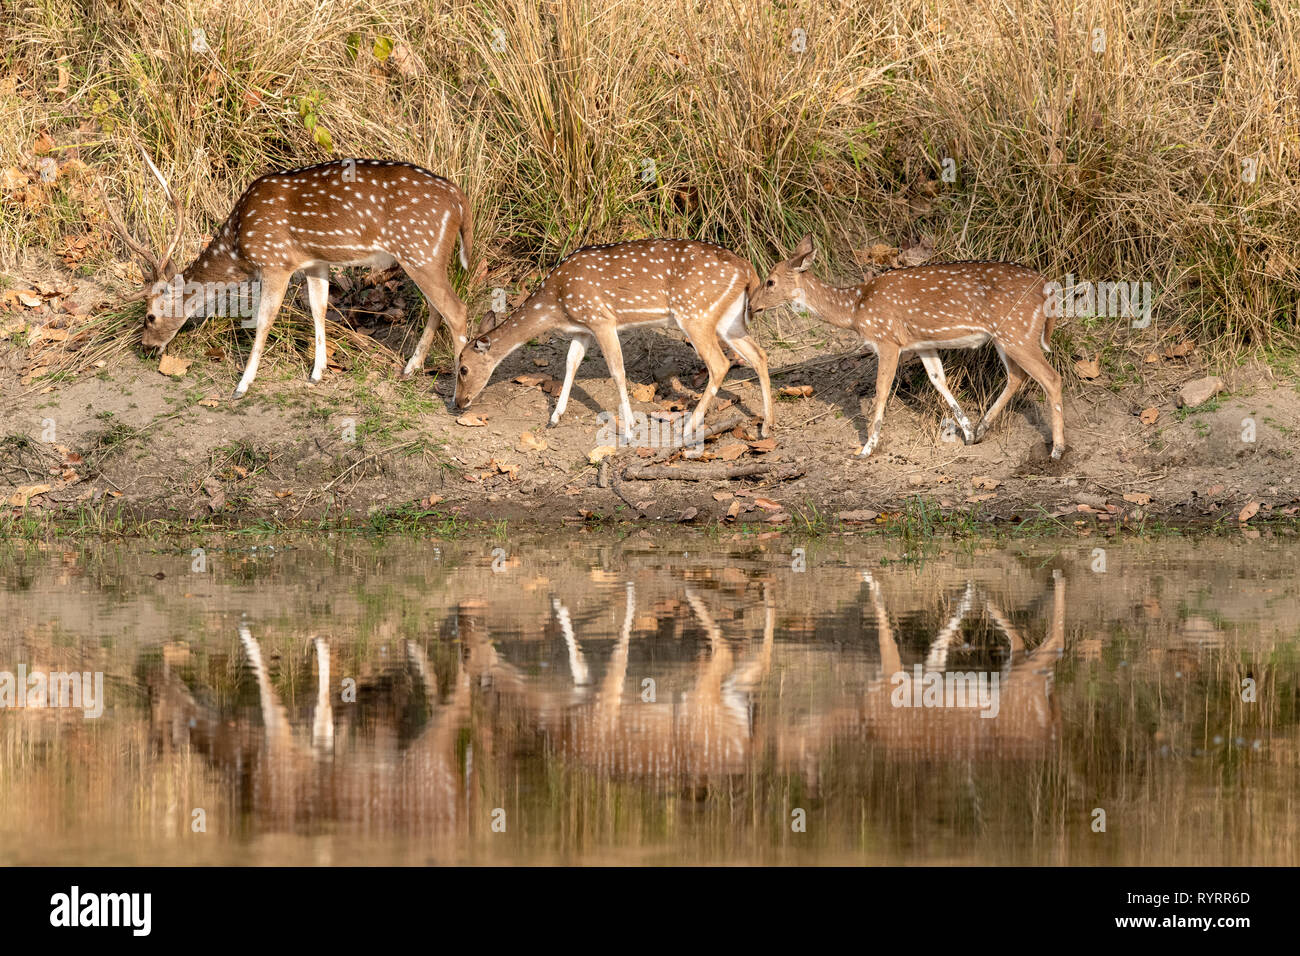 grazing chital cervus axis in india RYRR6D